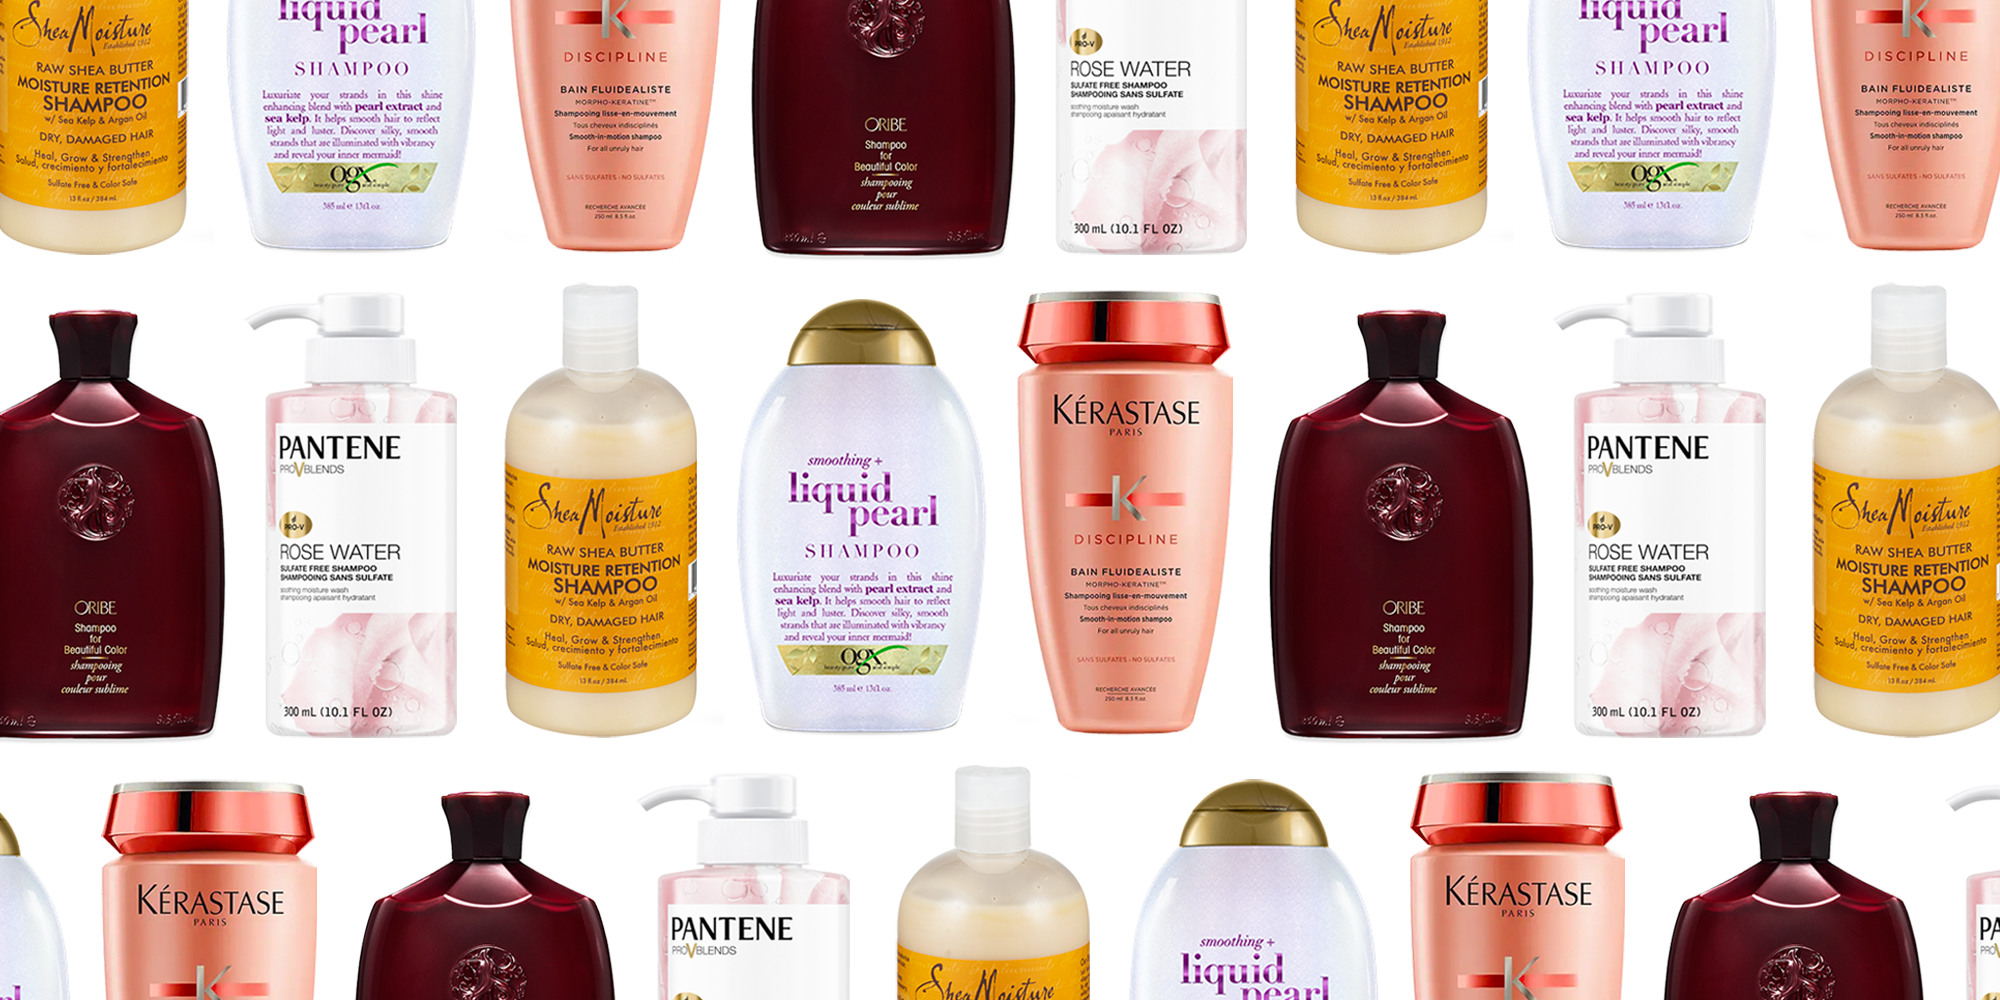 The Best Sulfate-Free Shampoo for Smooth, Shiny Hair